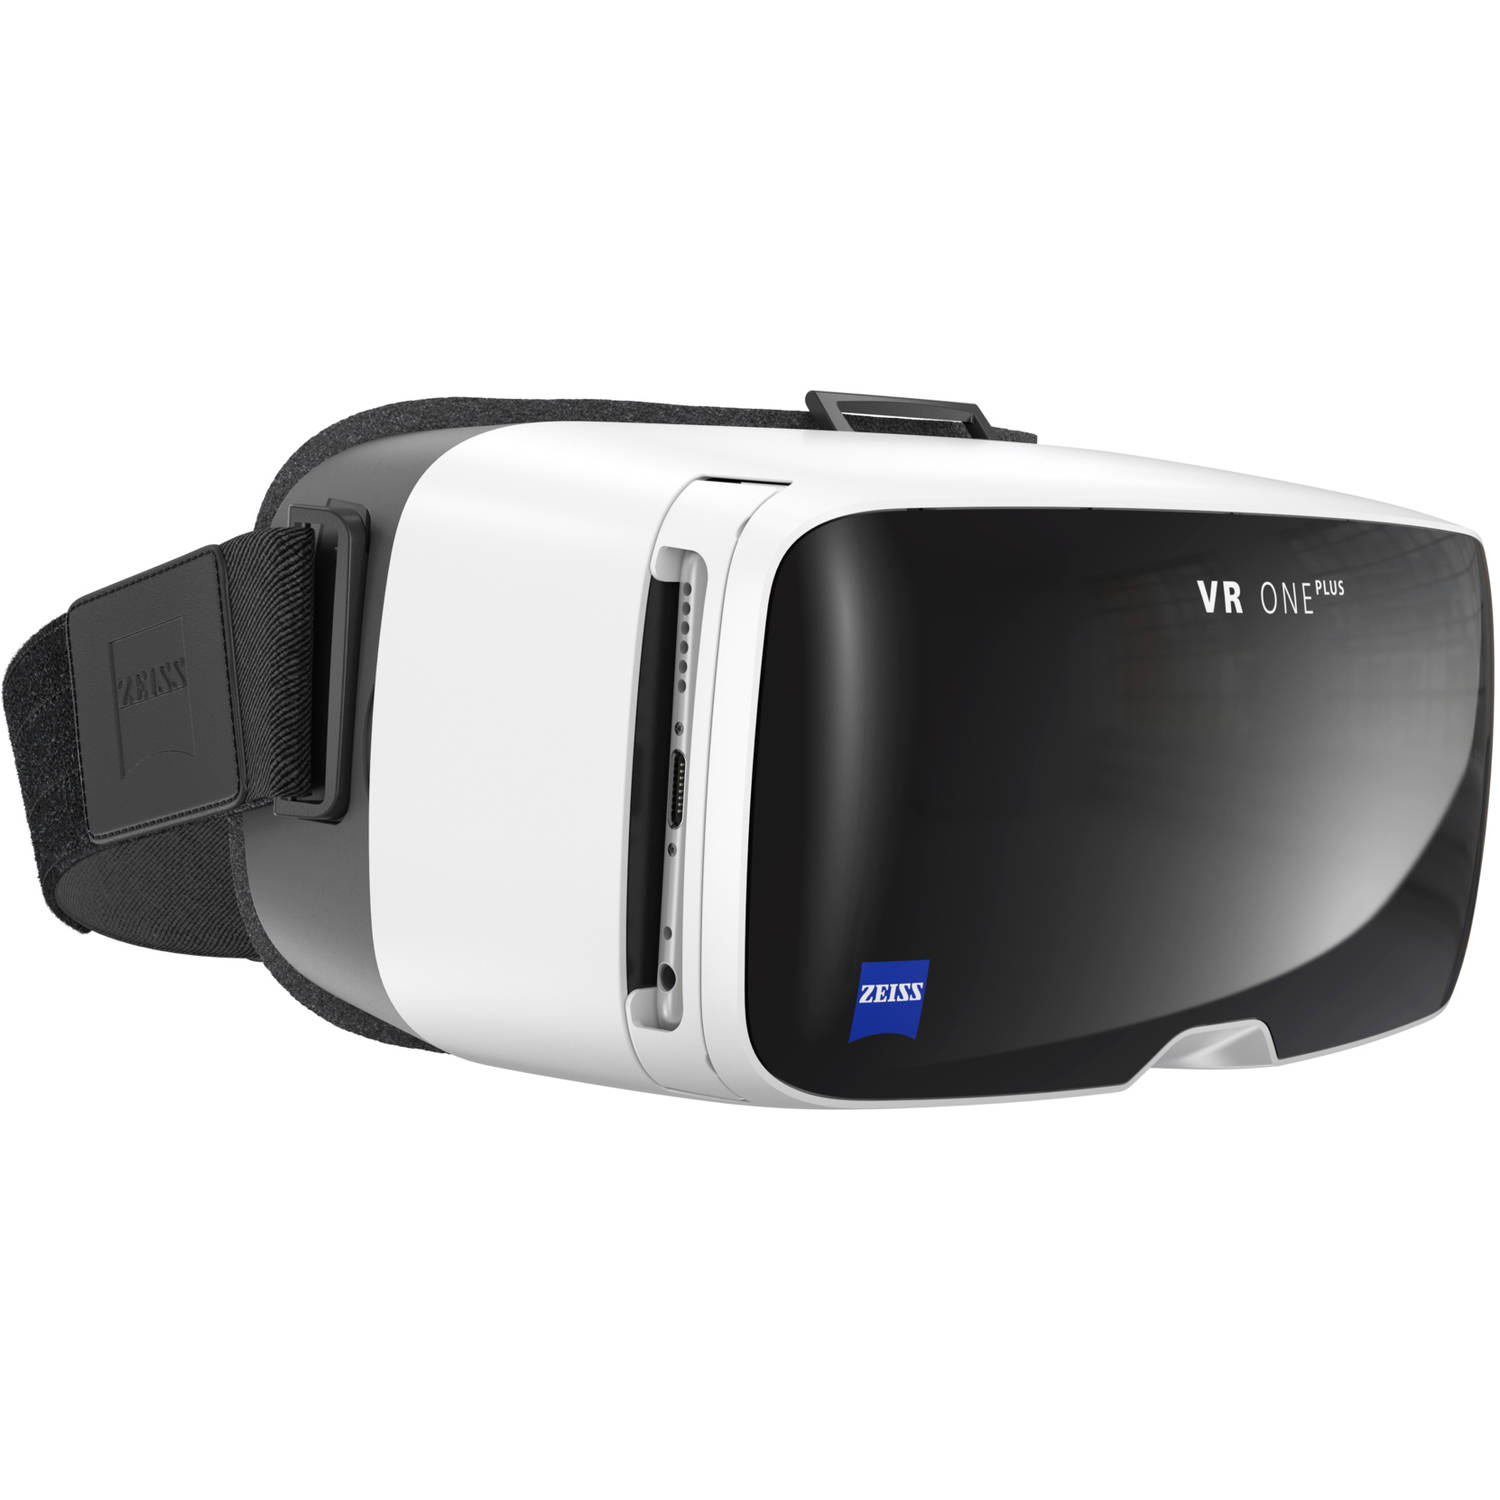 Ziess VR One Virtual Reality Smartphone Headset